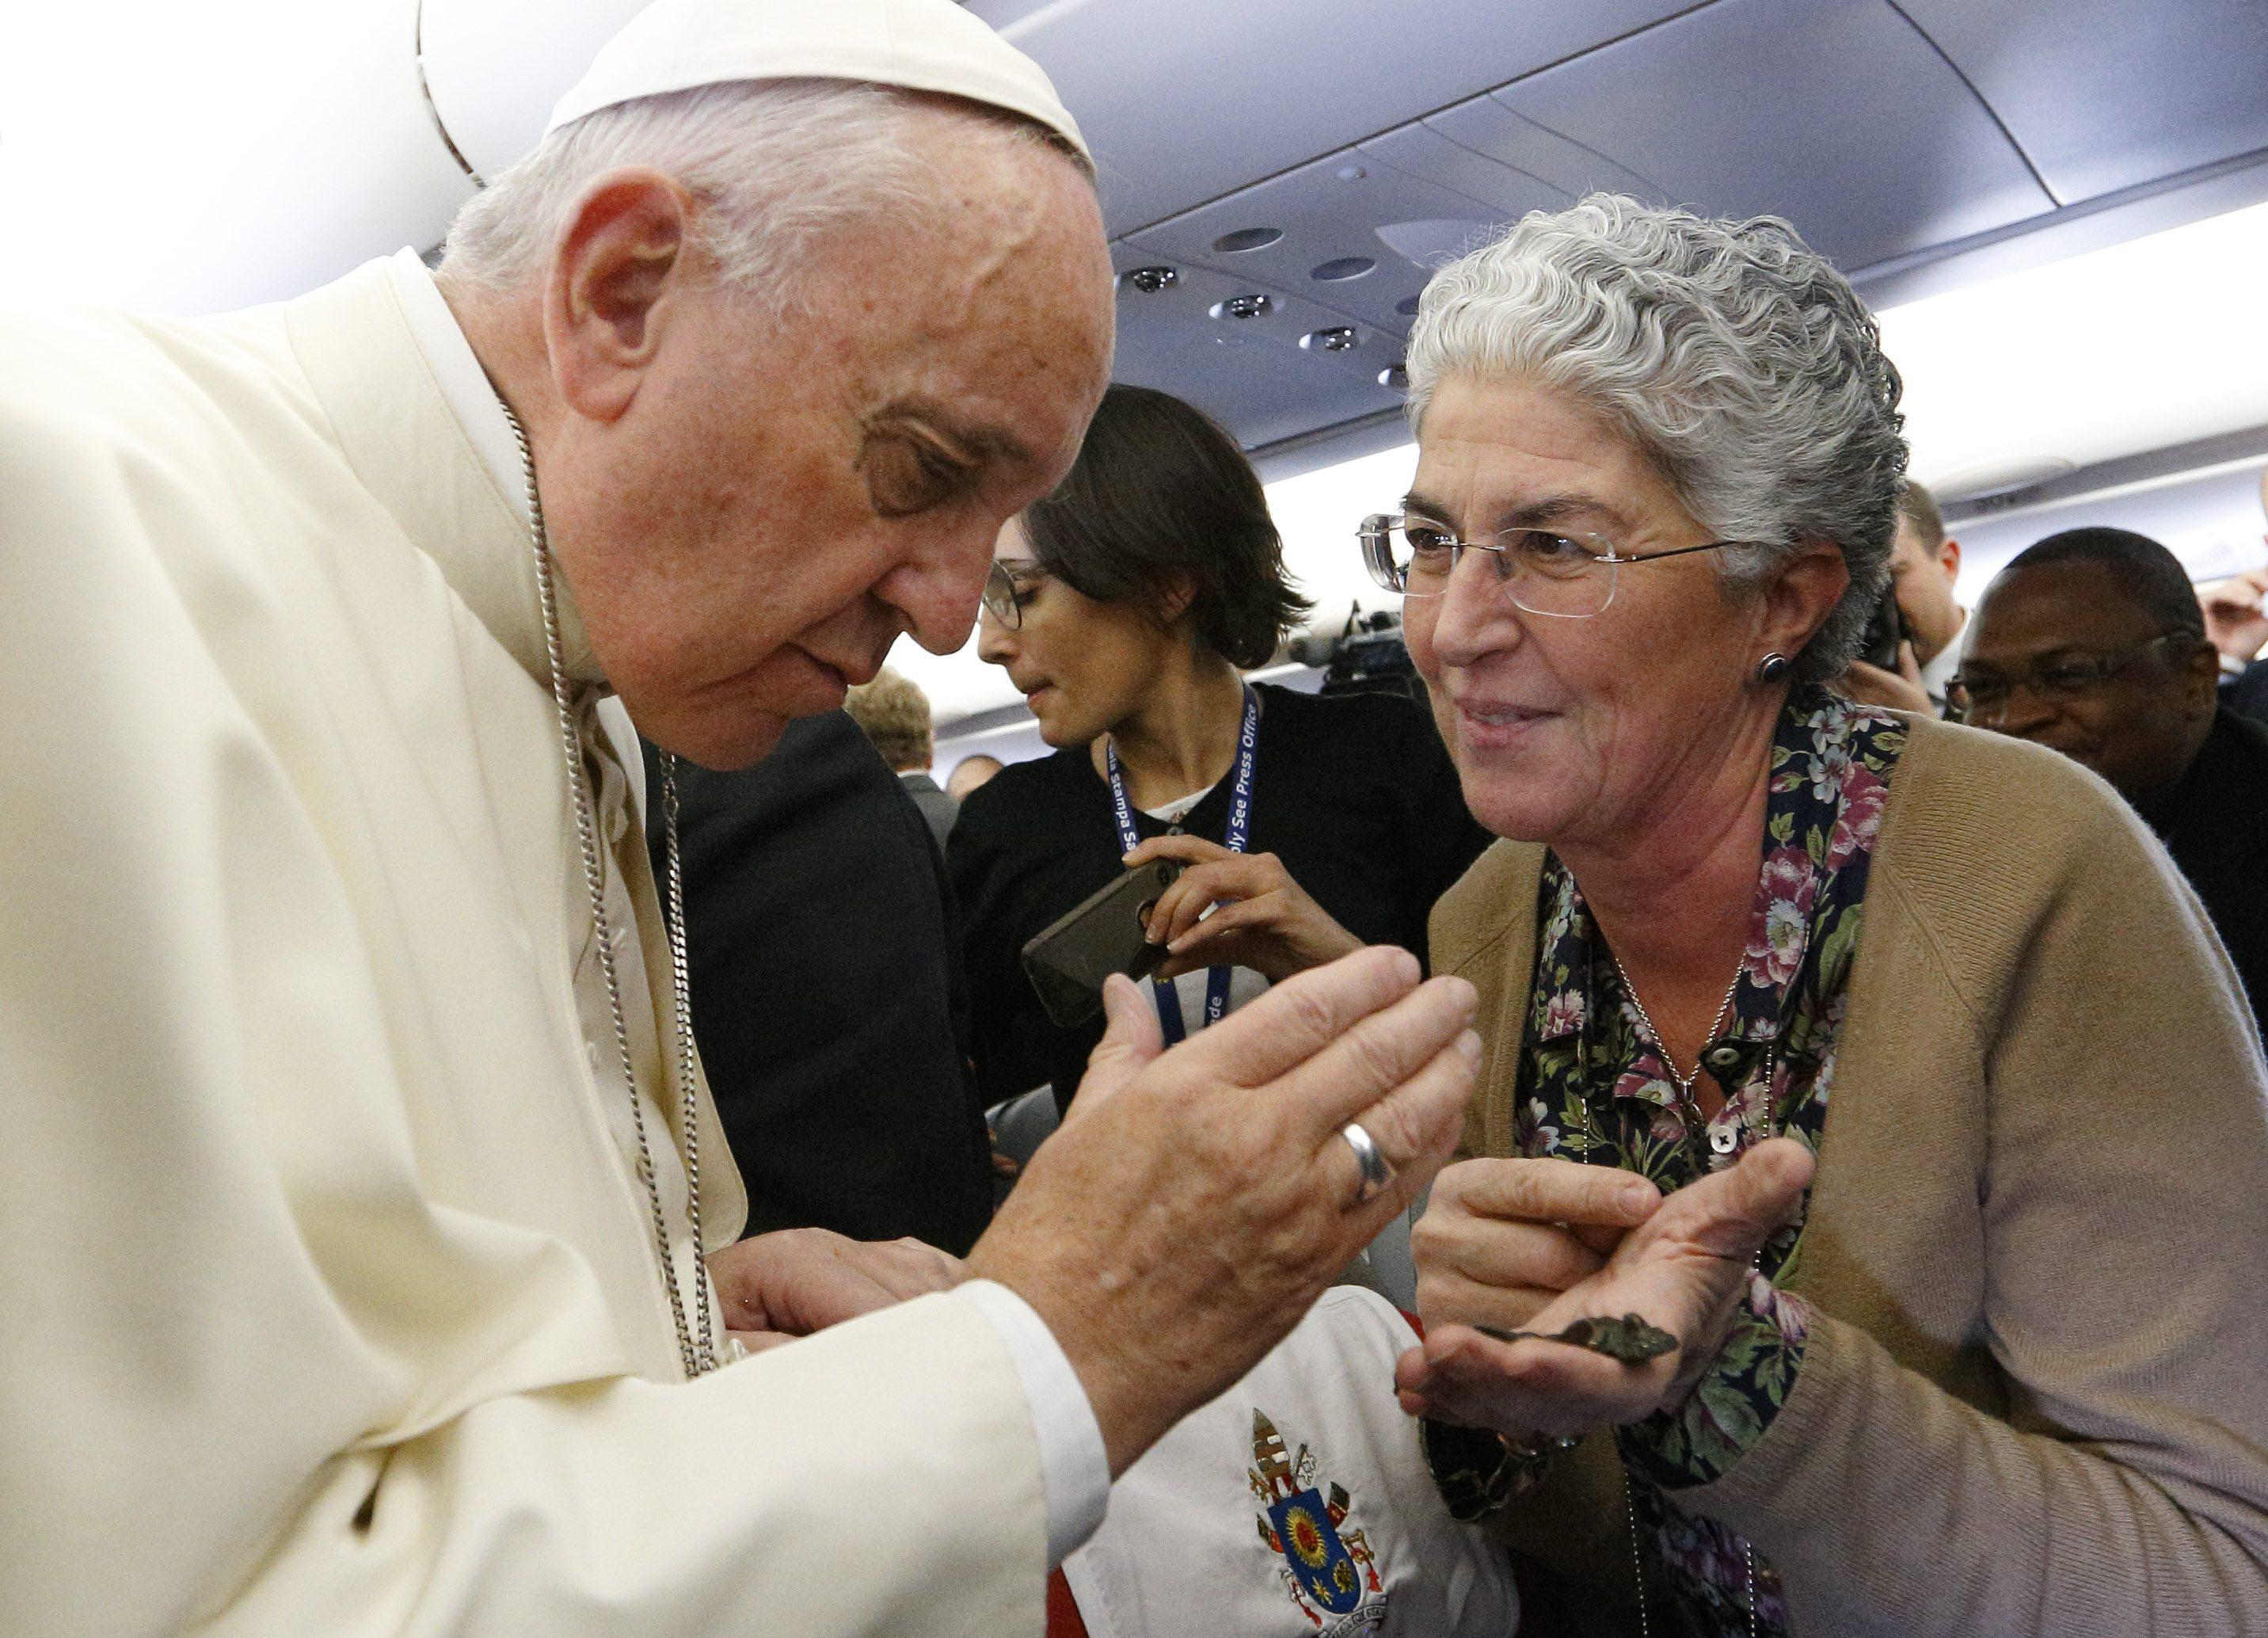 Pope Francis blesses a small sculpture of Jesus Christ presented by Aura Miguel Vistas of Radio Maria Renascenca on his flight from Rome to Nairobi